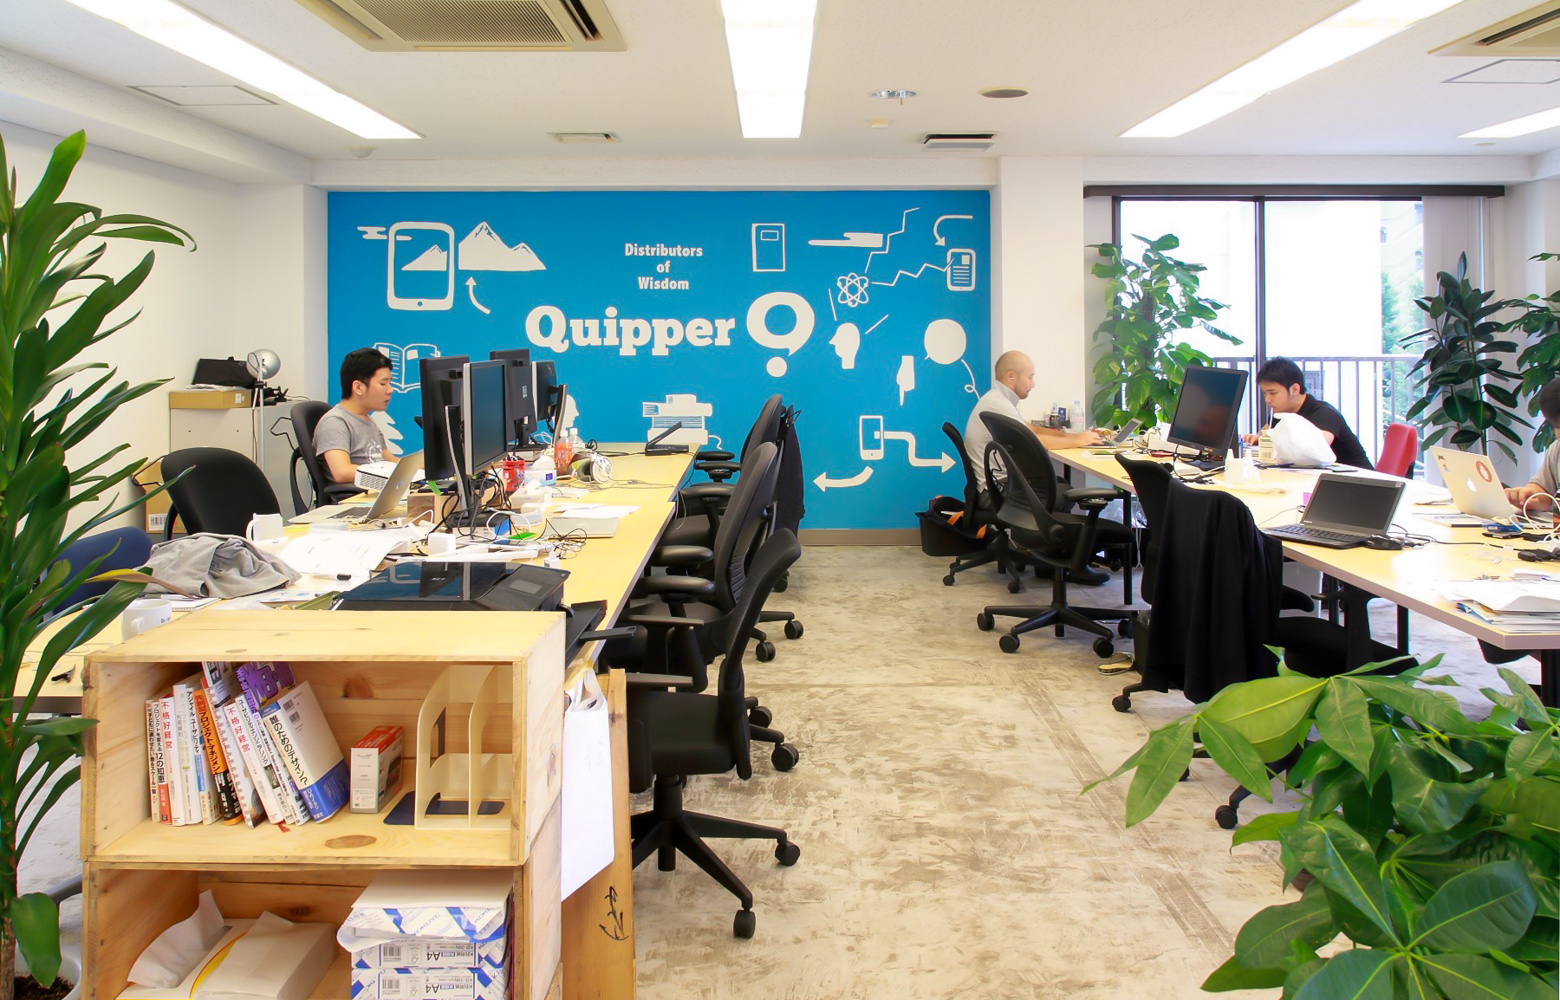 Quipper Ltd Japan Branch Office Work Space デザイン・レイアウト事例